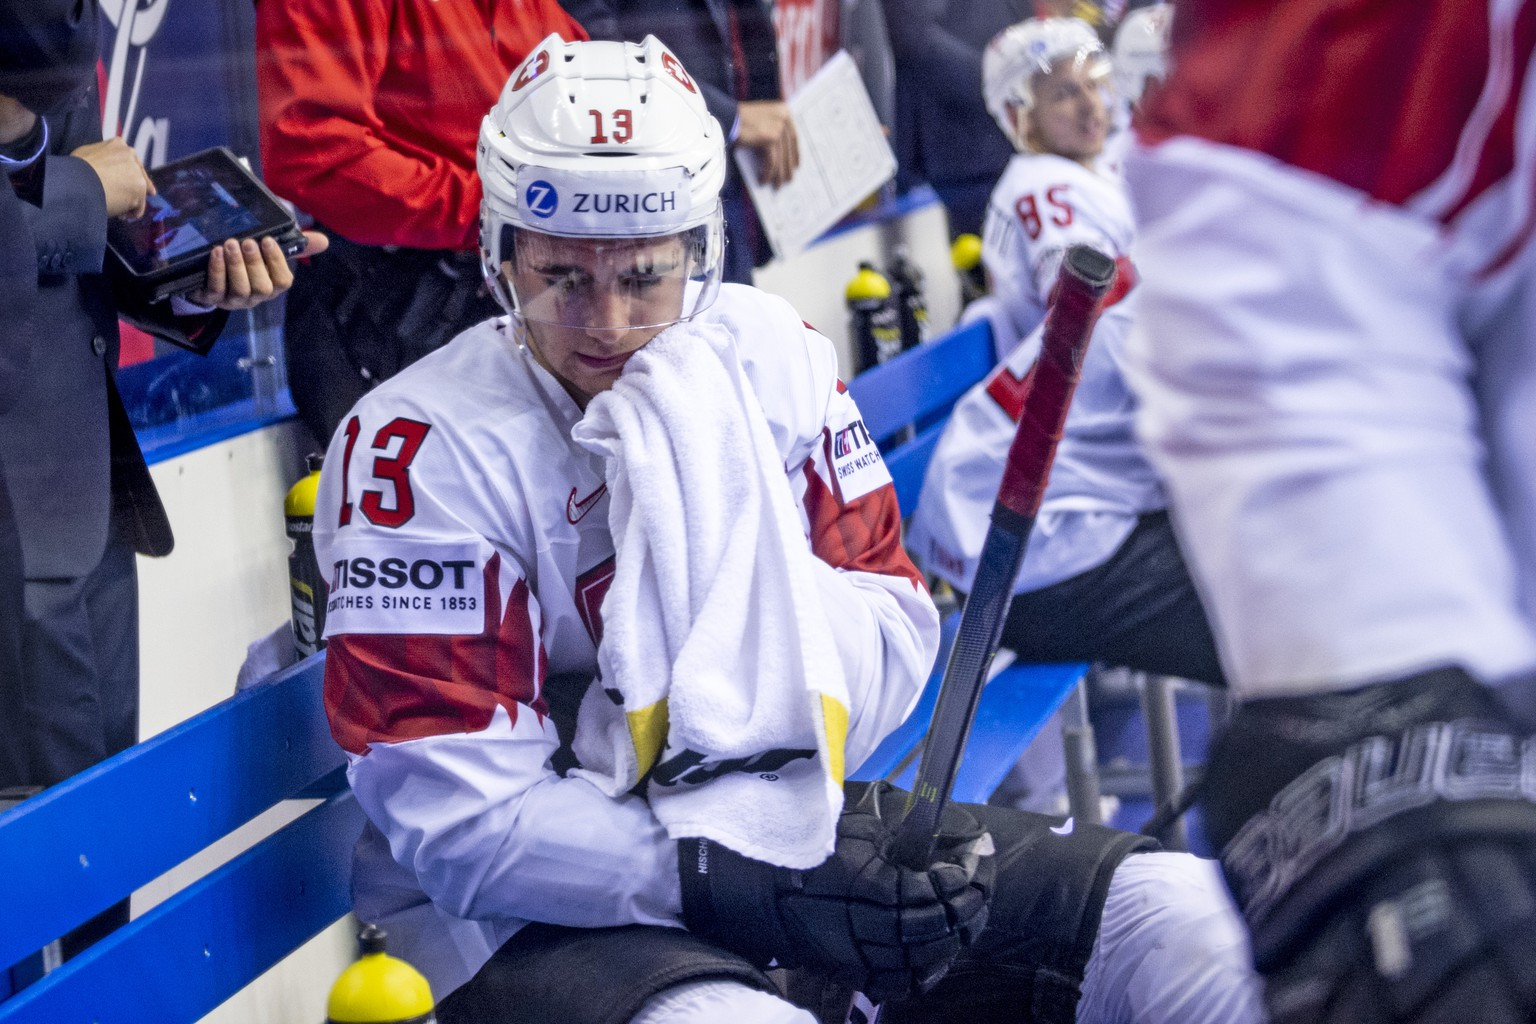 Switzerland's Nico Hischier disappointed after losing the quarter final game between Canada and Switzerland, at the IIHF 2019 World Ice Hockey Championships, at the Steel Arena in Kosice, Slovakia, on Thursday, May 23, 2019. (KEYSTONE/Melanie Duchene)